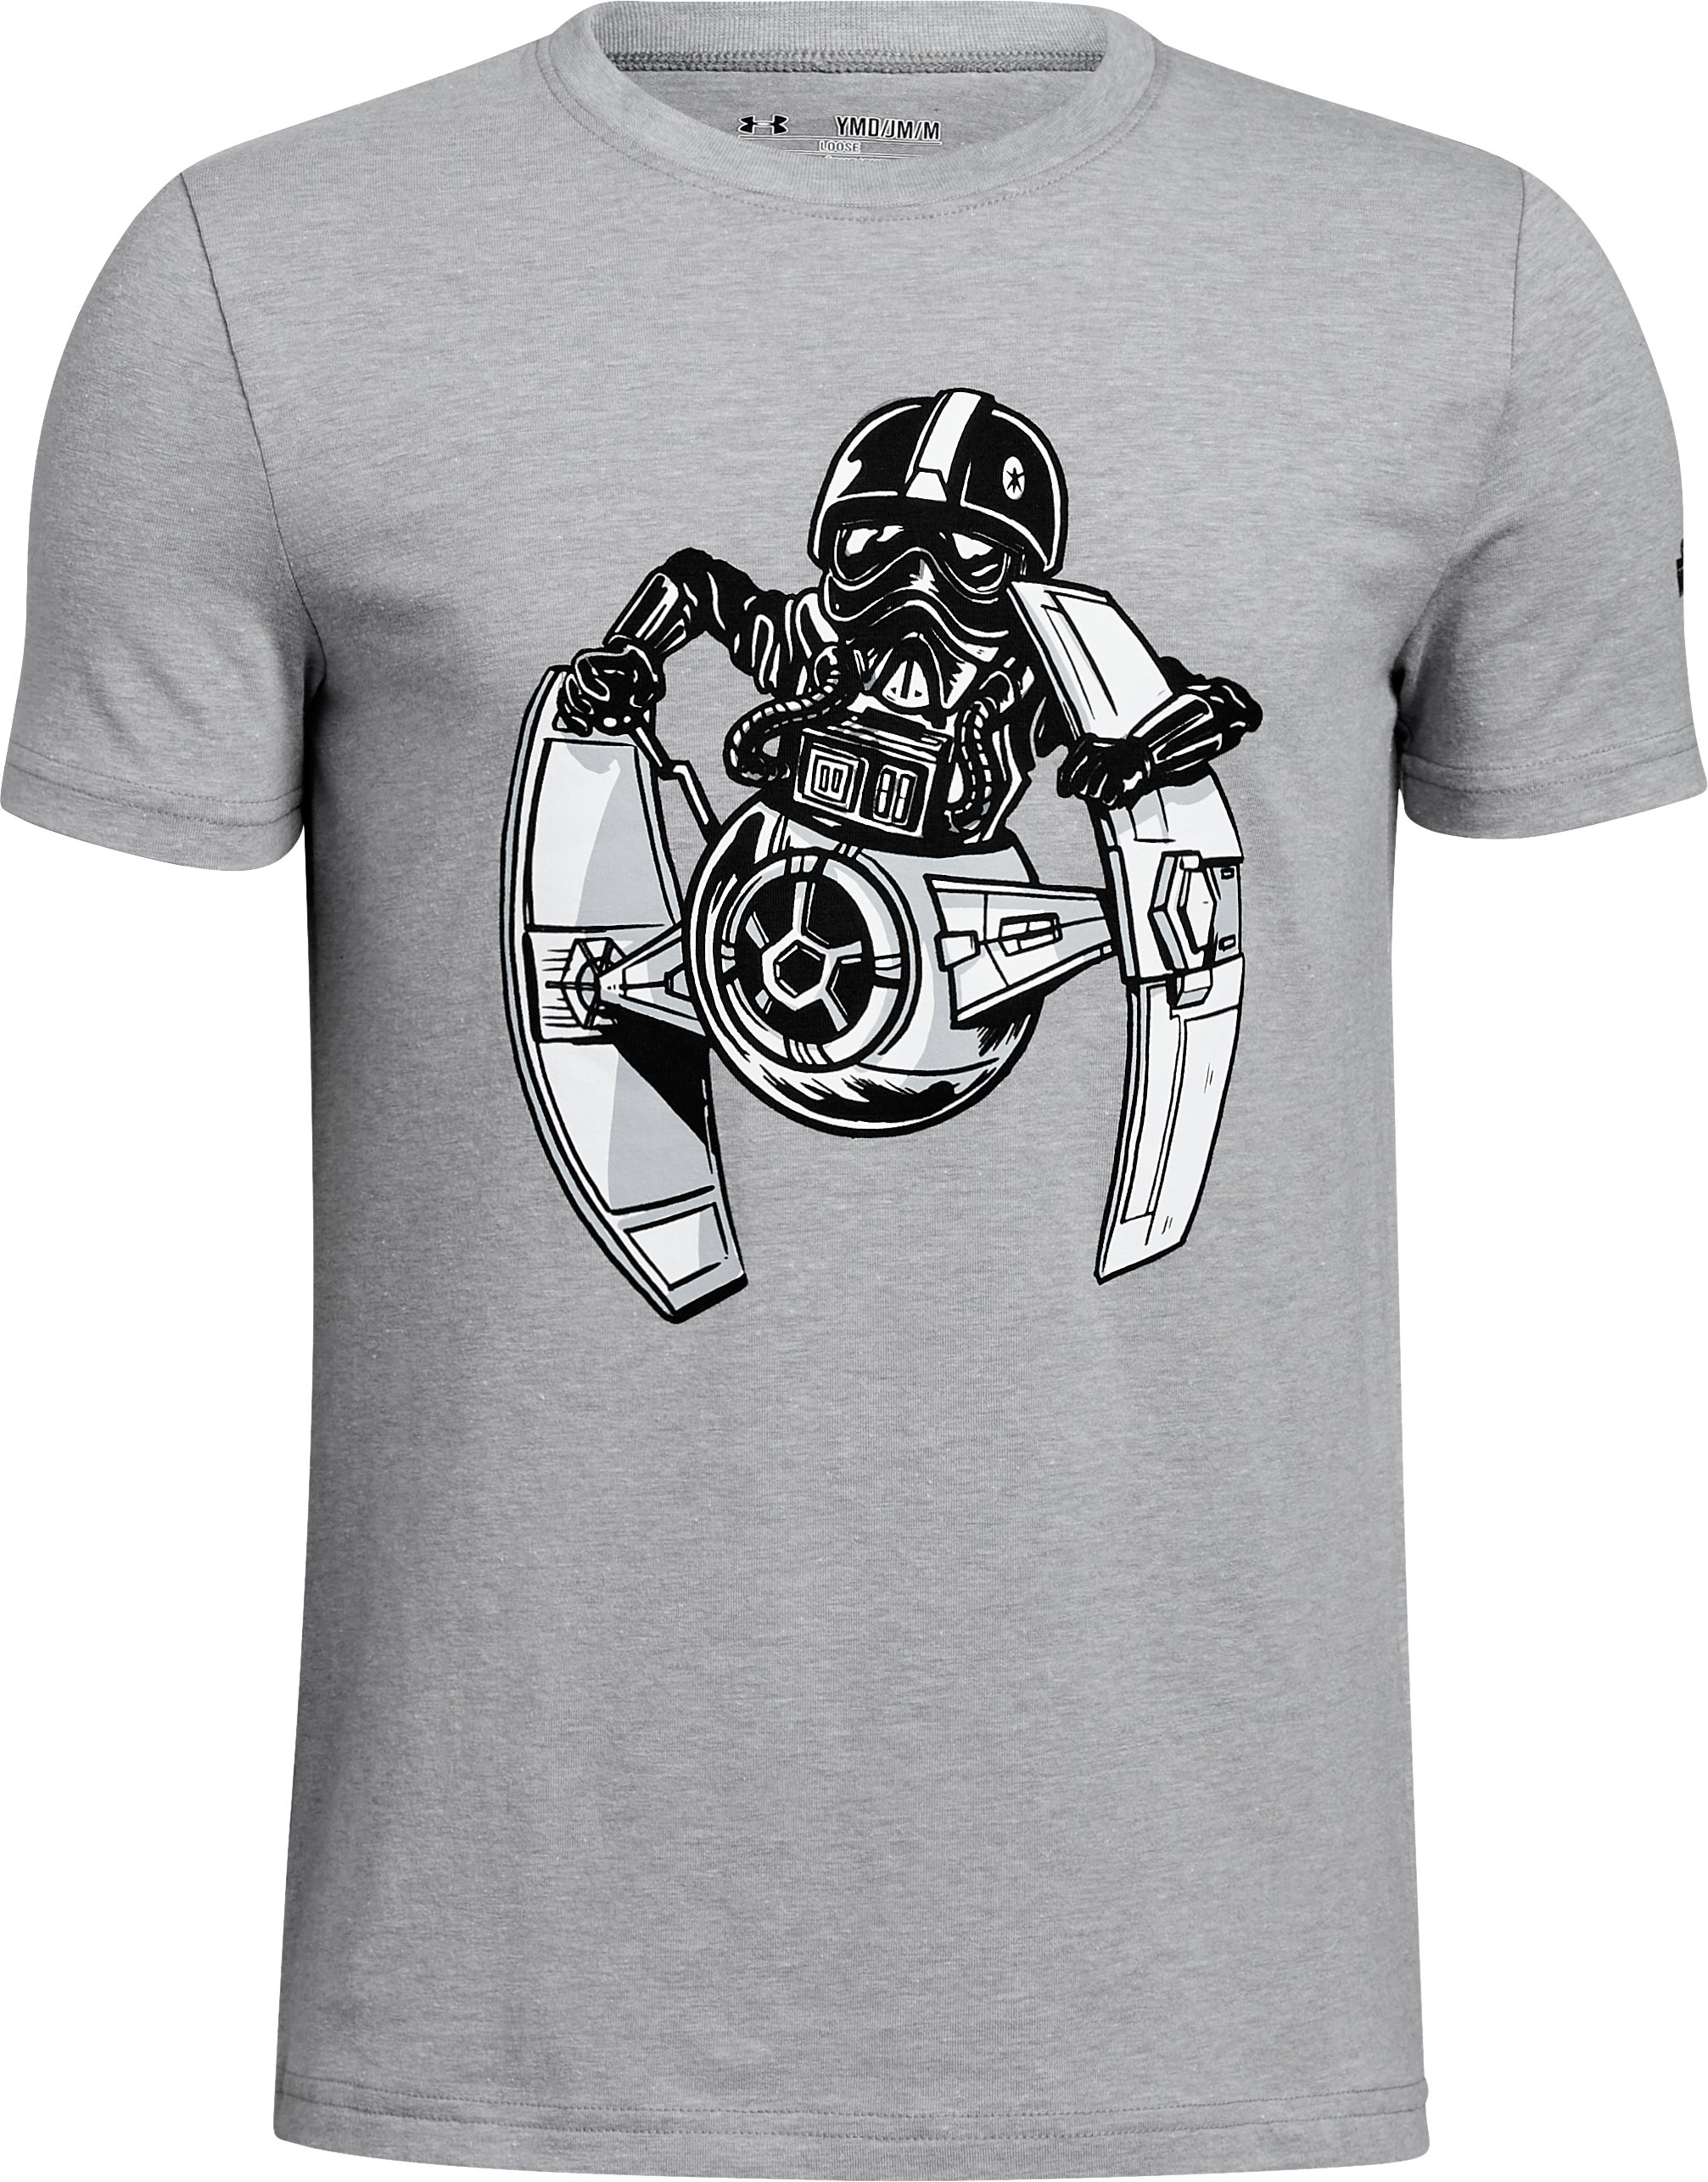 Boys' Star Wars UA Tie Pilot T-Shirt, STEEL LIGHT HEATHER